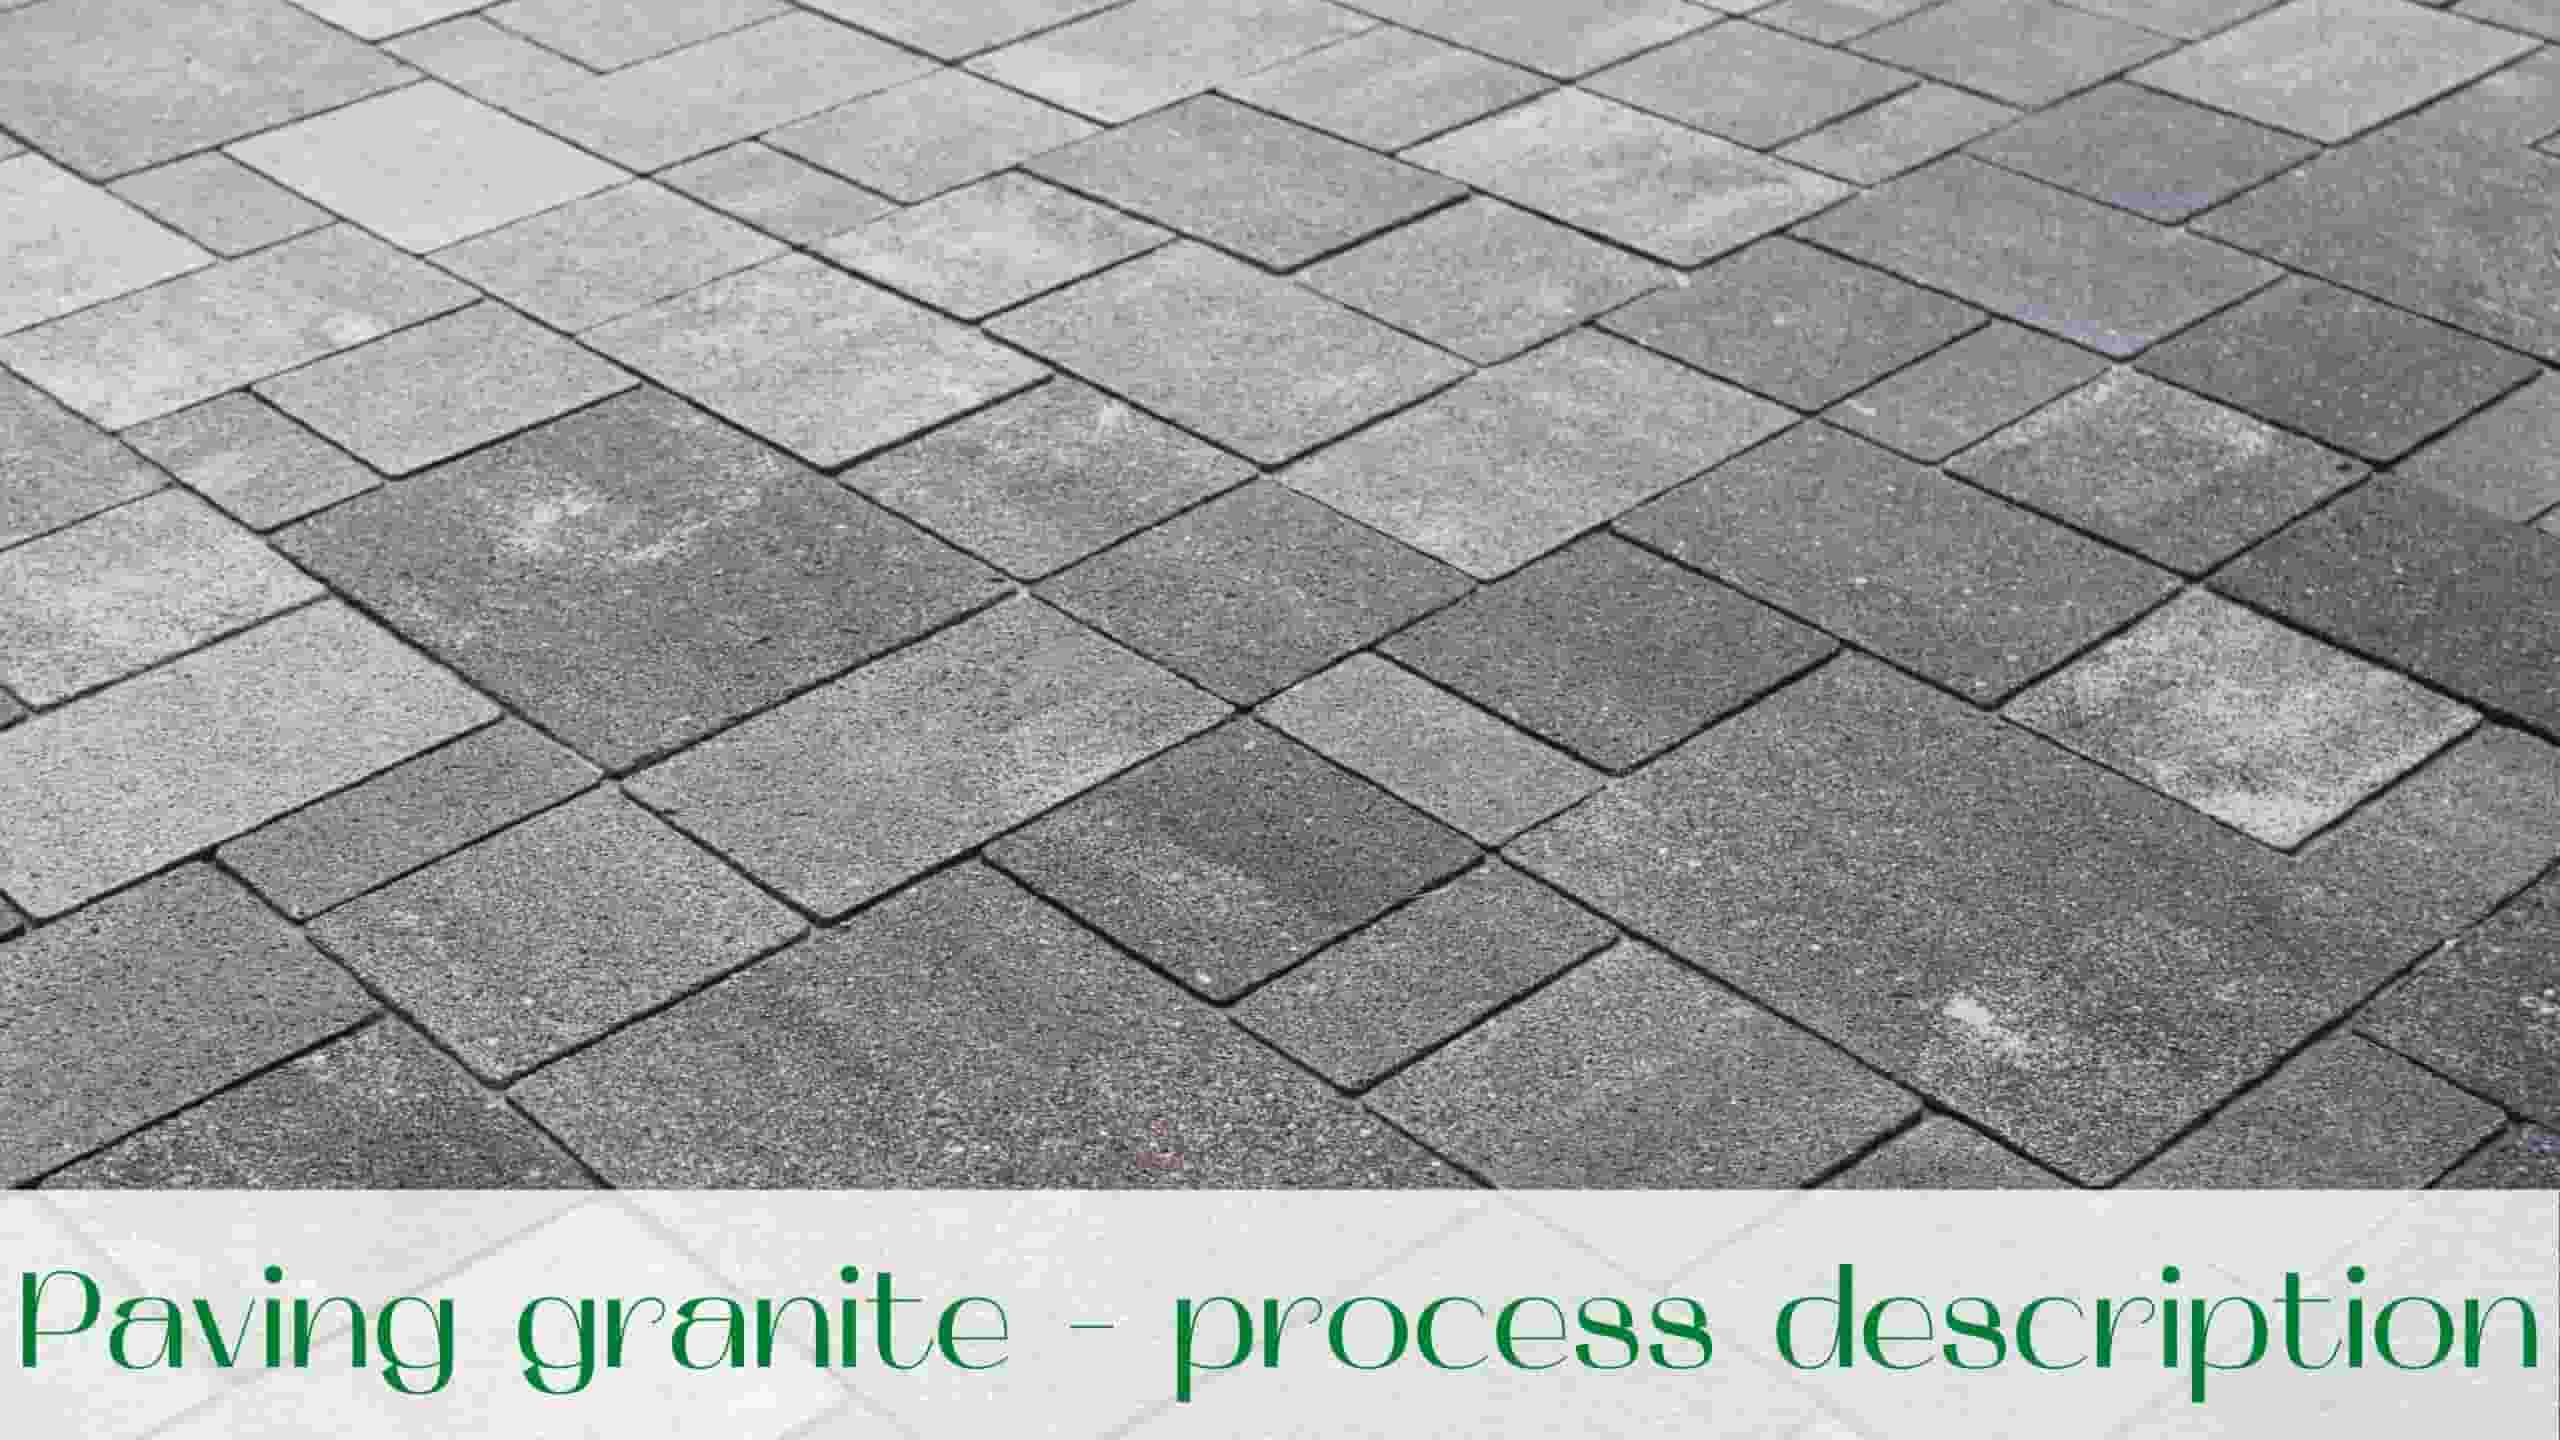 image-paving-granite